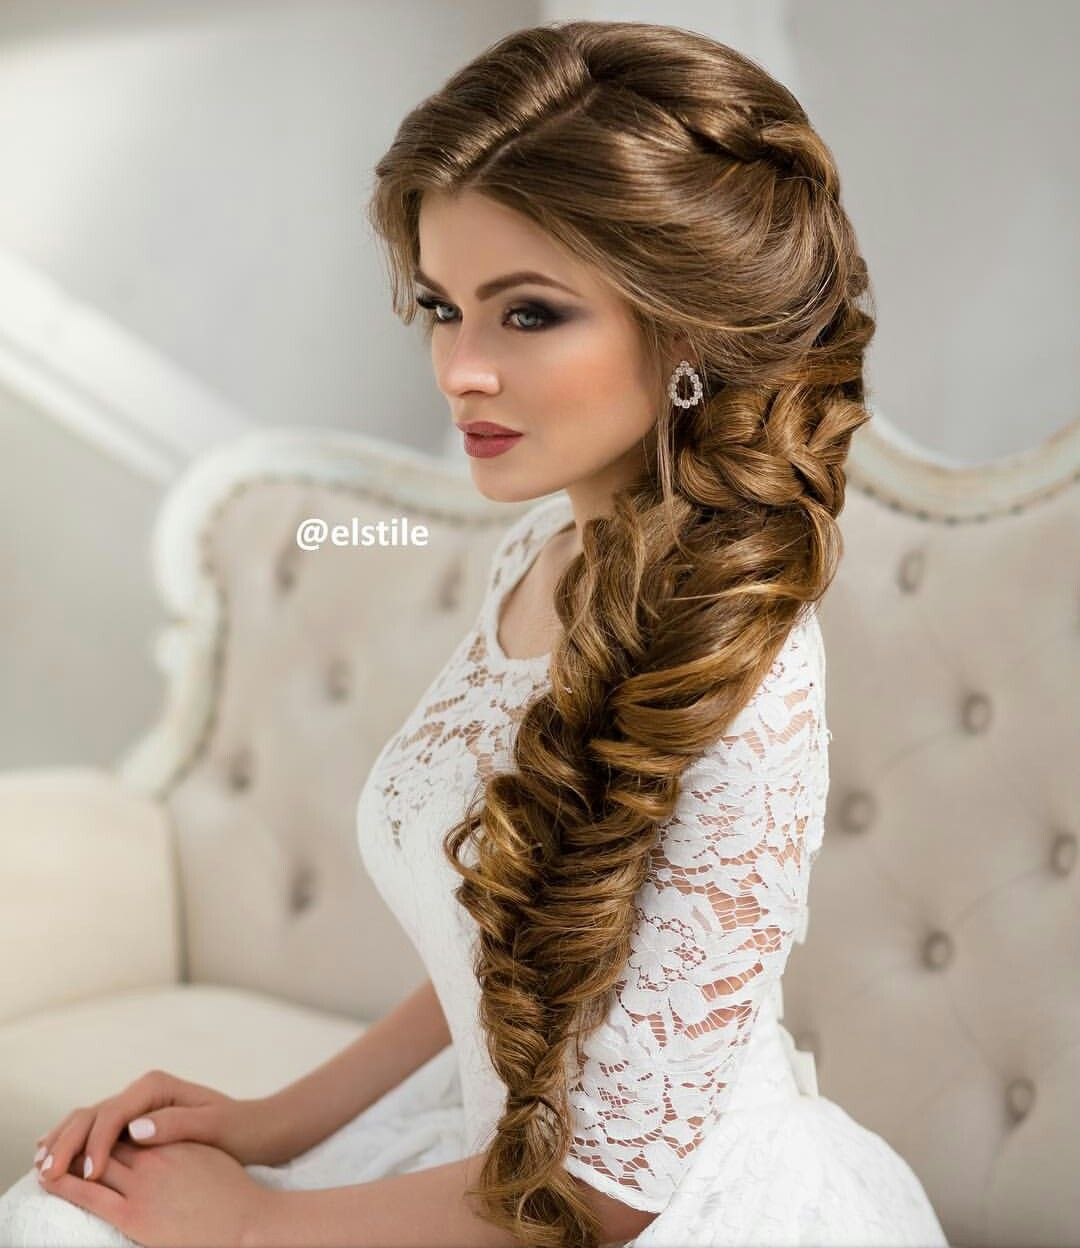 Boho Bridal Hairstyles For Carefree Bride: #hair #braid #hairstyle